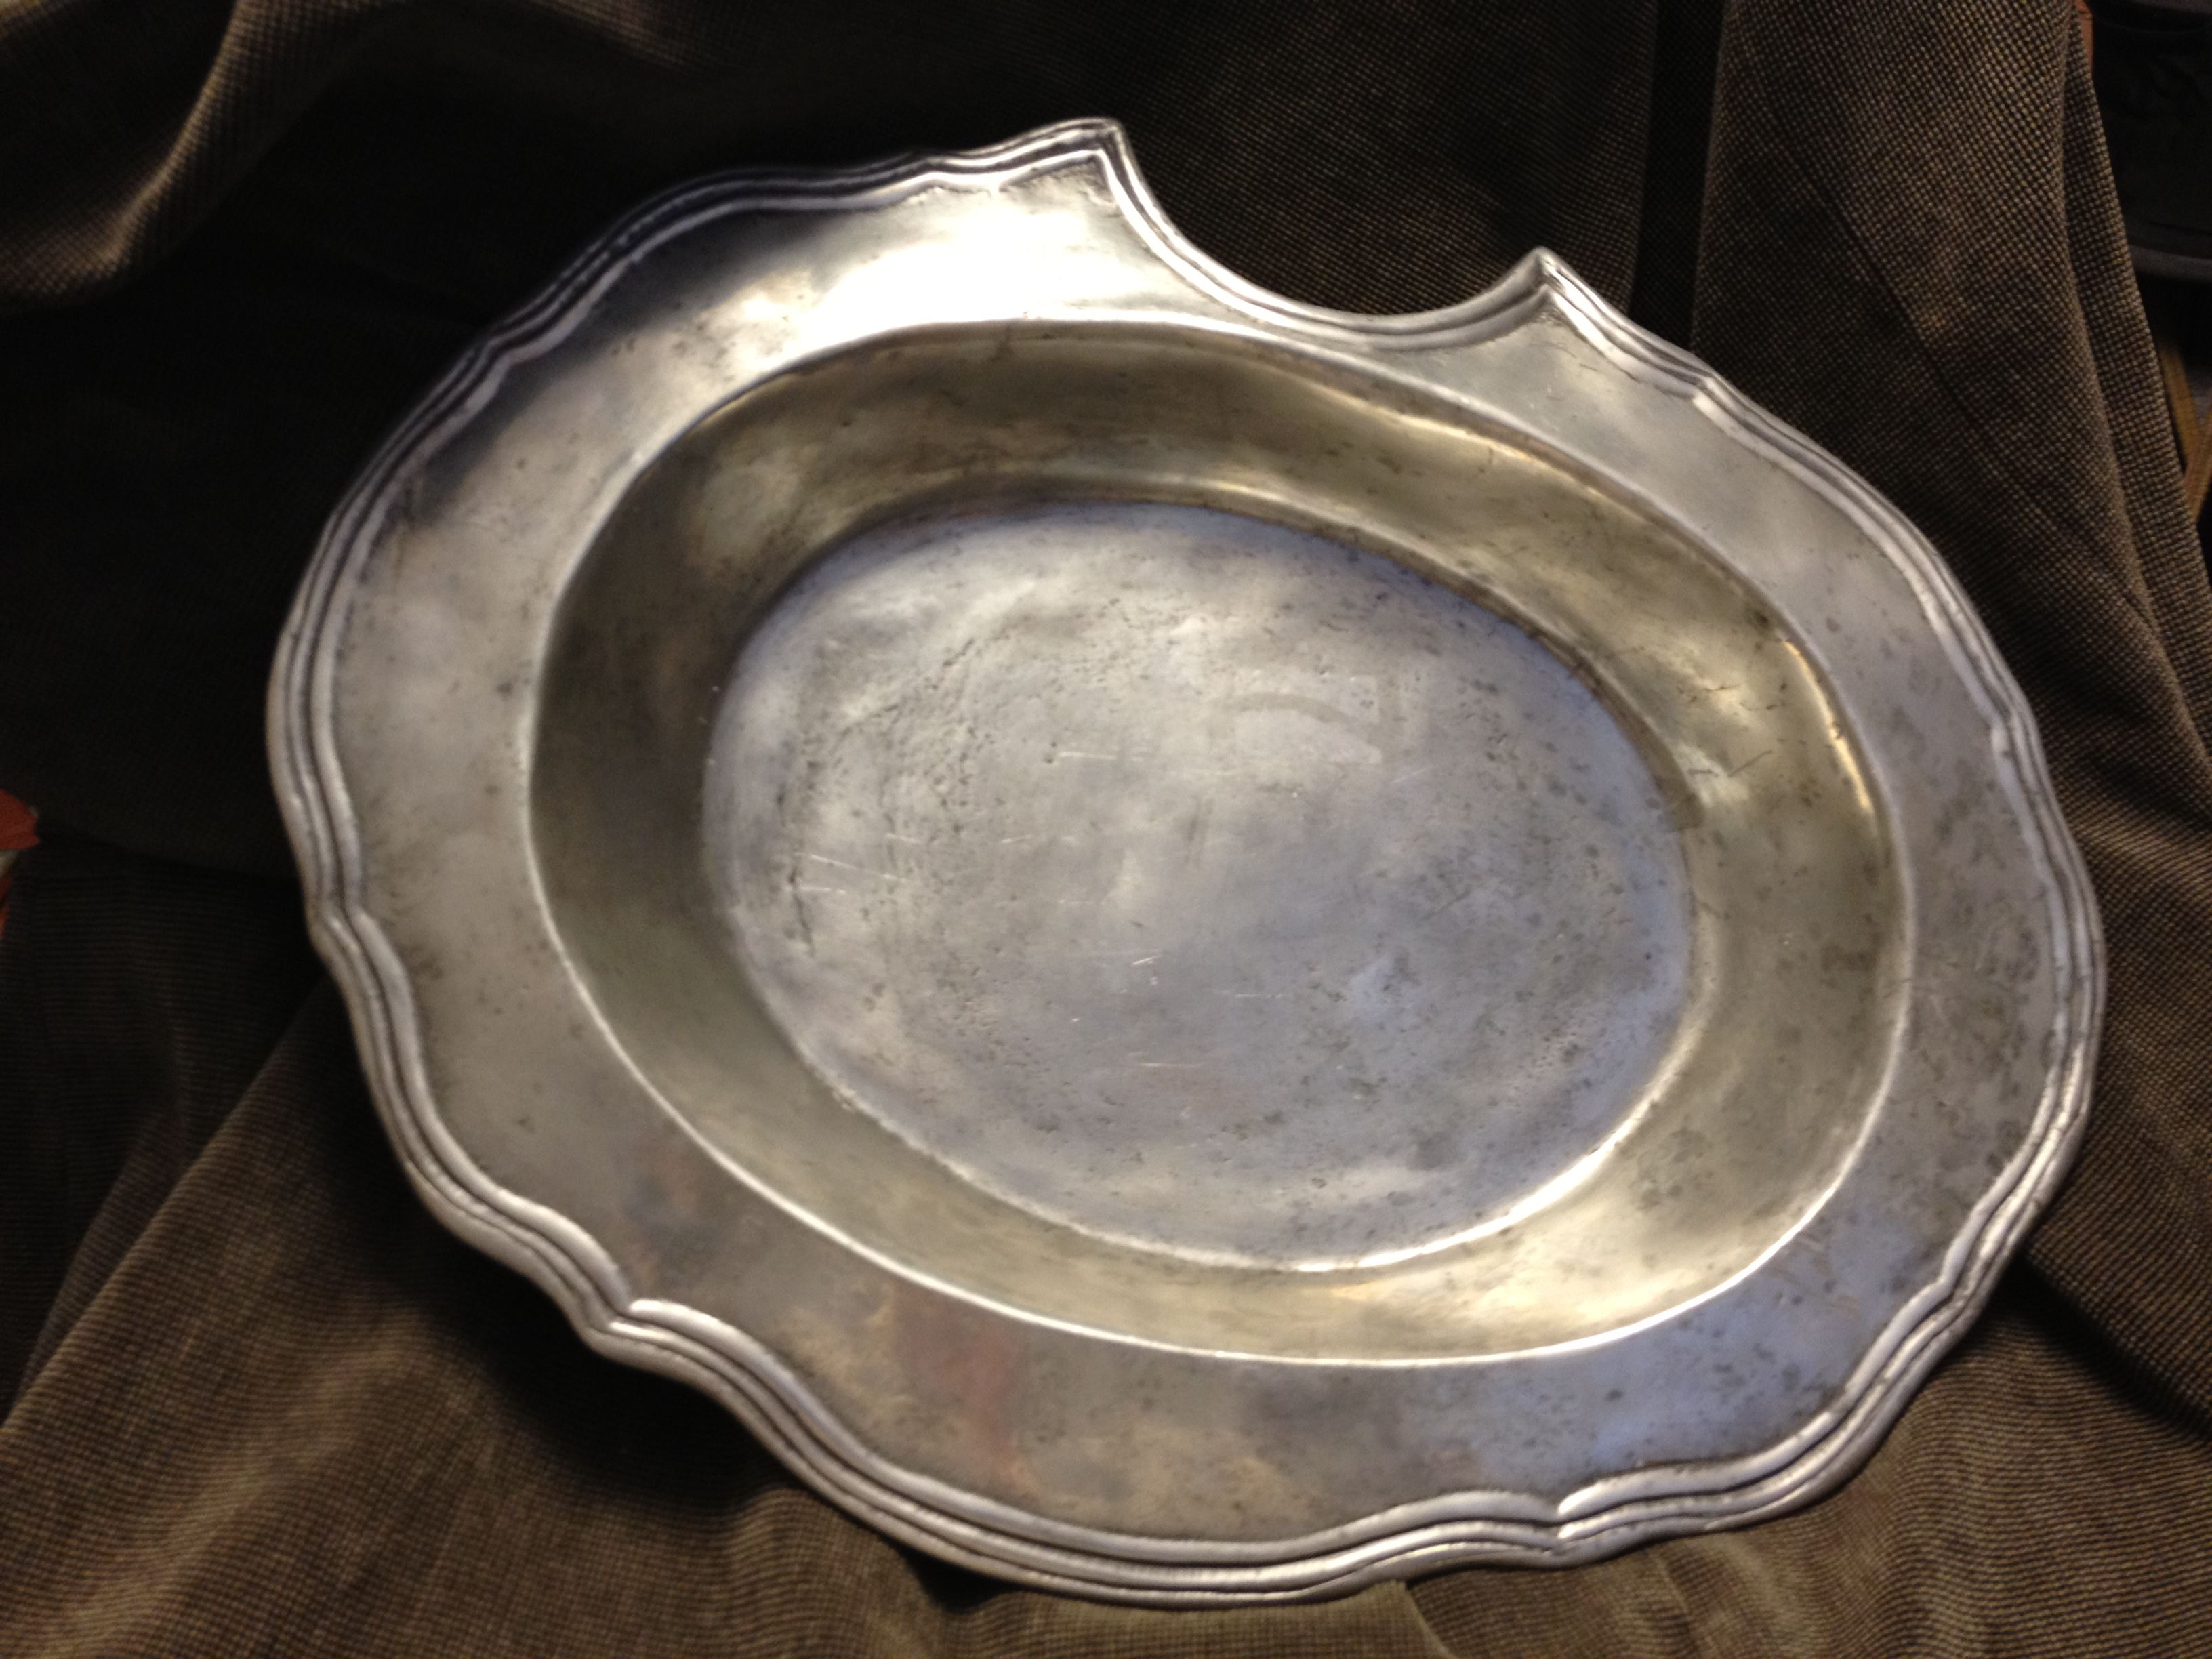 To ensure a nice clean shave, 18th century barbershops throughout England and France would have used this type oval pewter basin (with section cut out on brim) on all of their preferred customers.